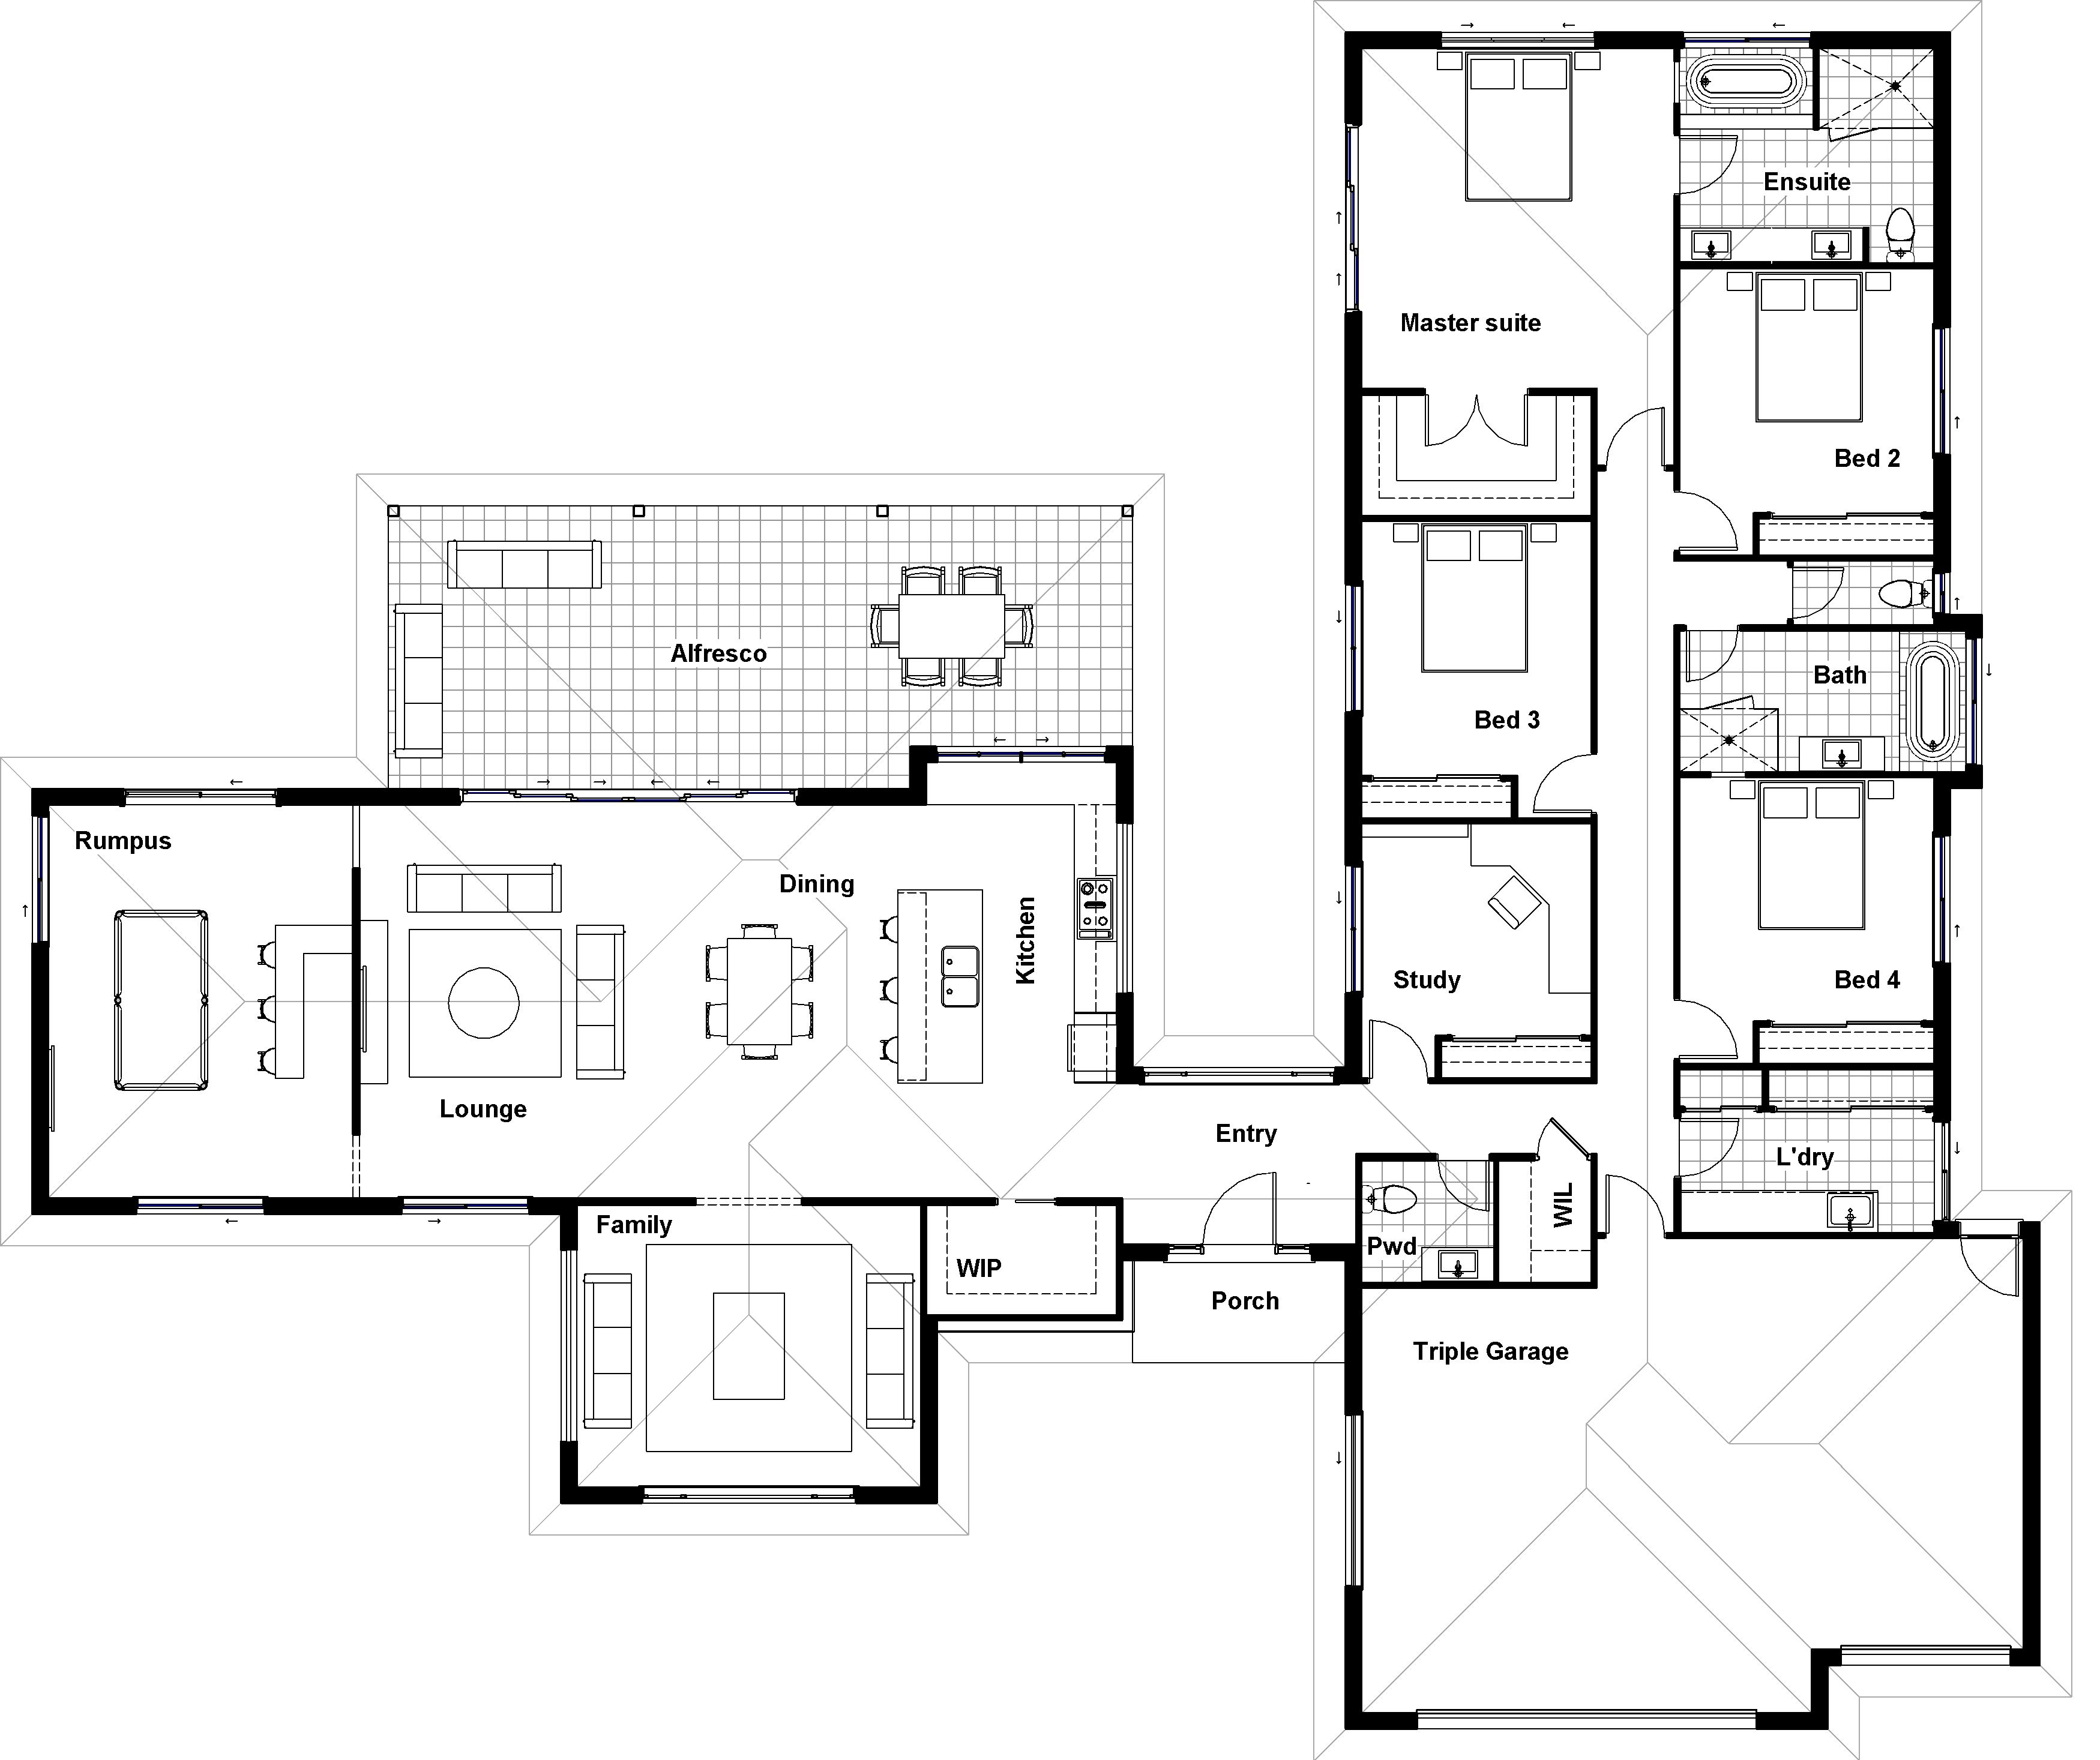 Floor Plan Friday: Separate living and bedroom wings